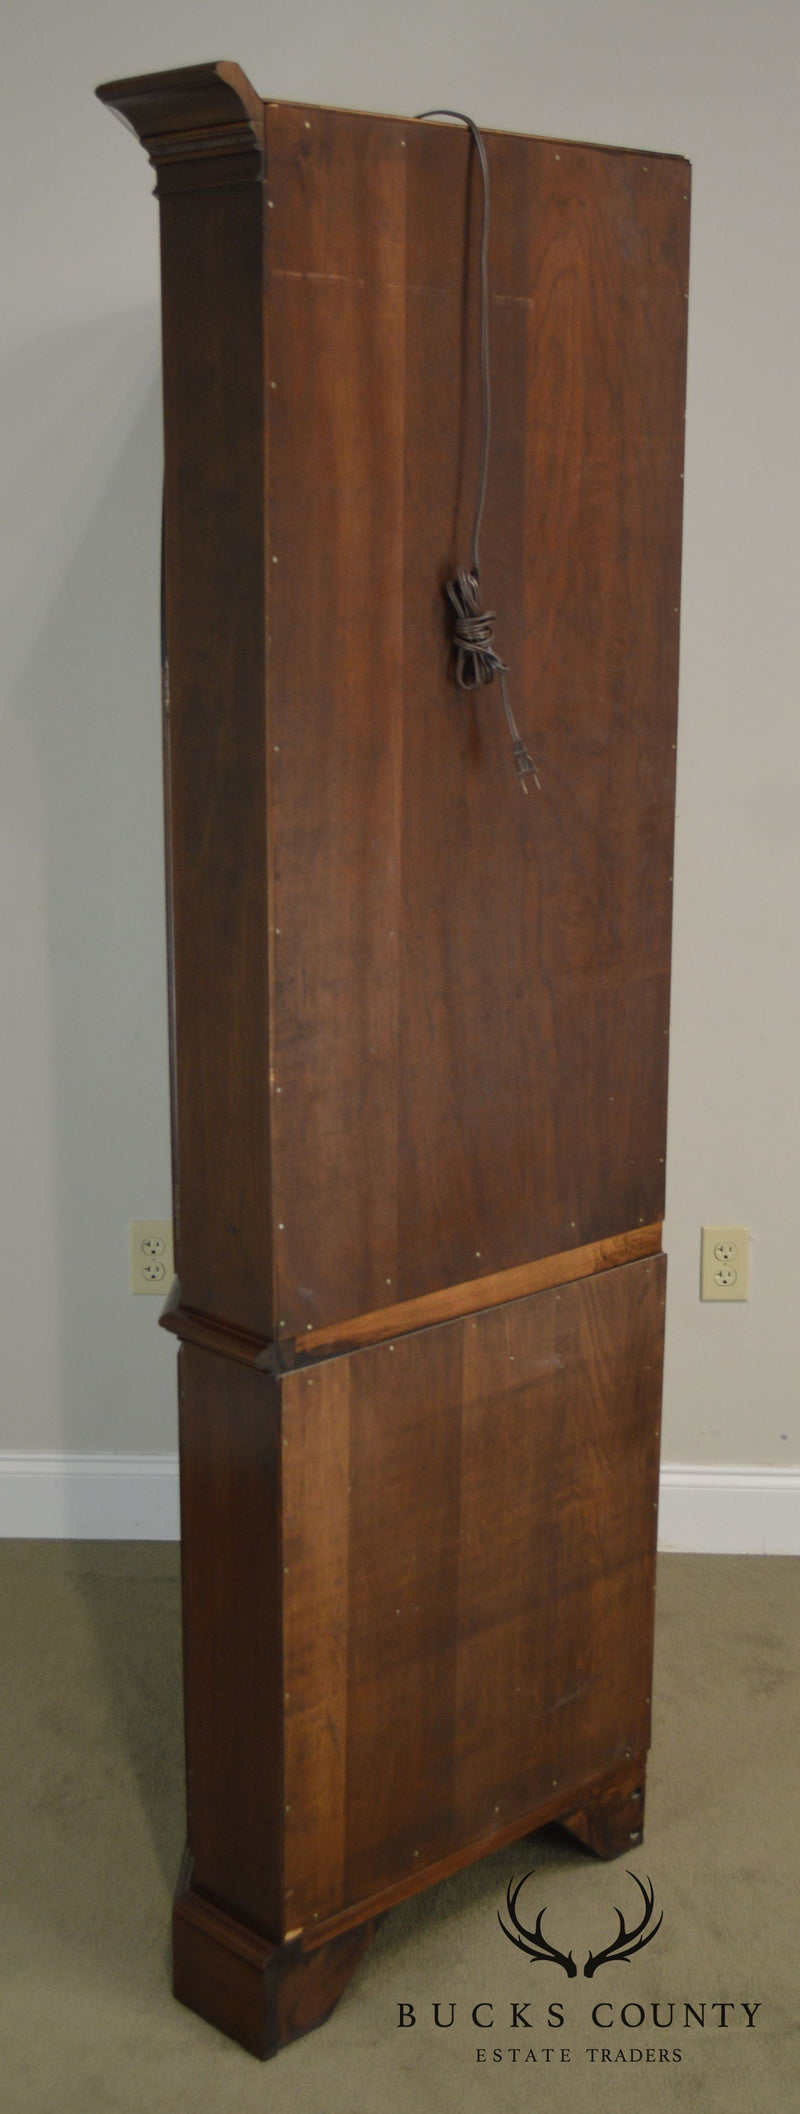 Ethan Allen Georgian Court Cherry Traditional Corner Cabinet